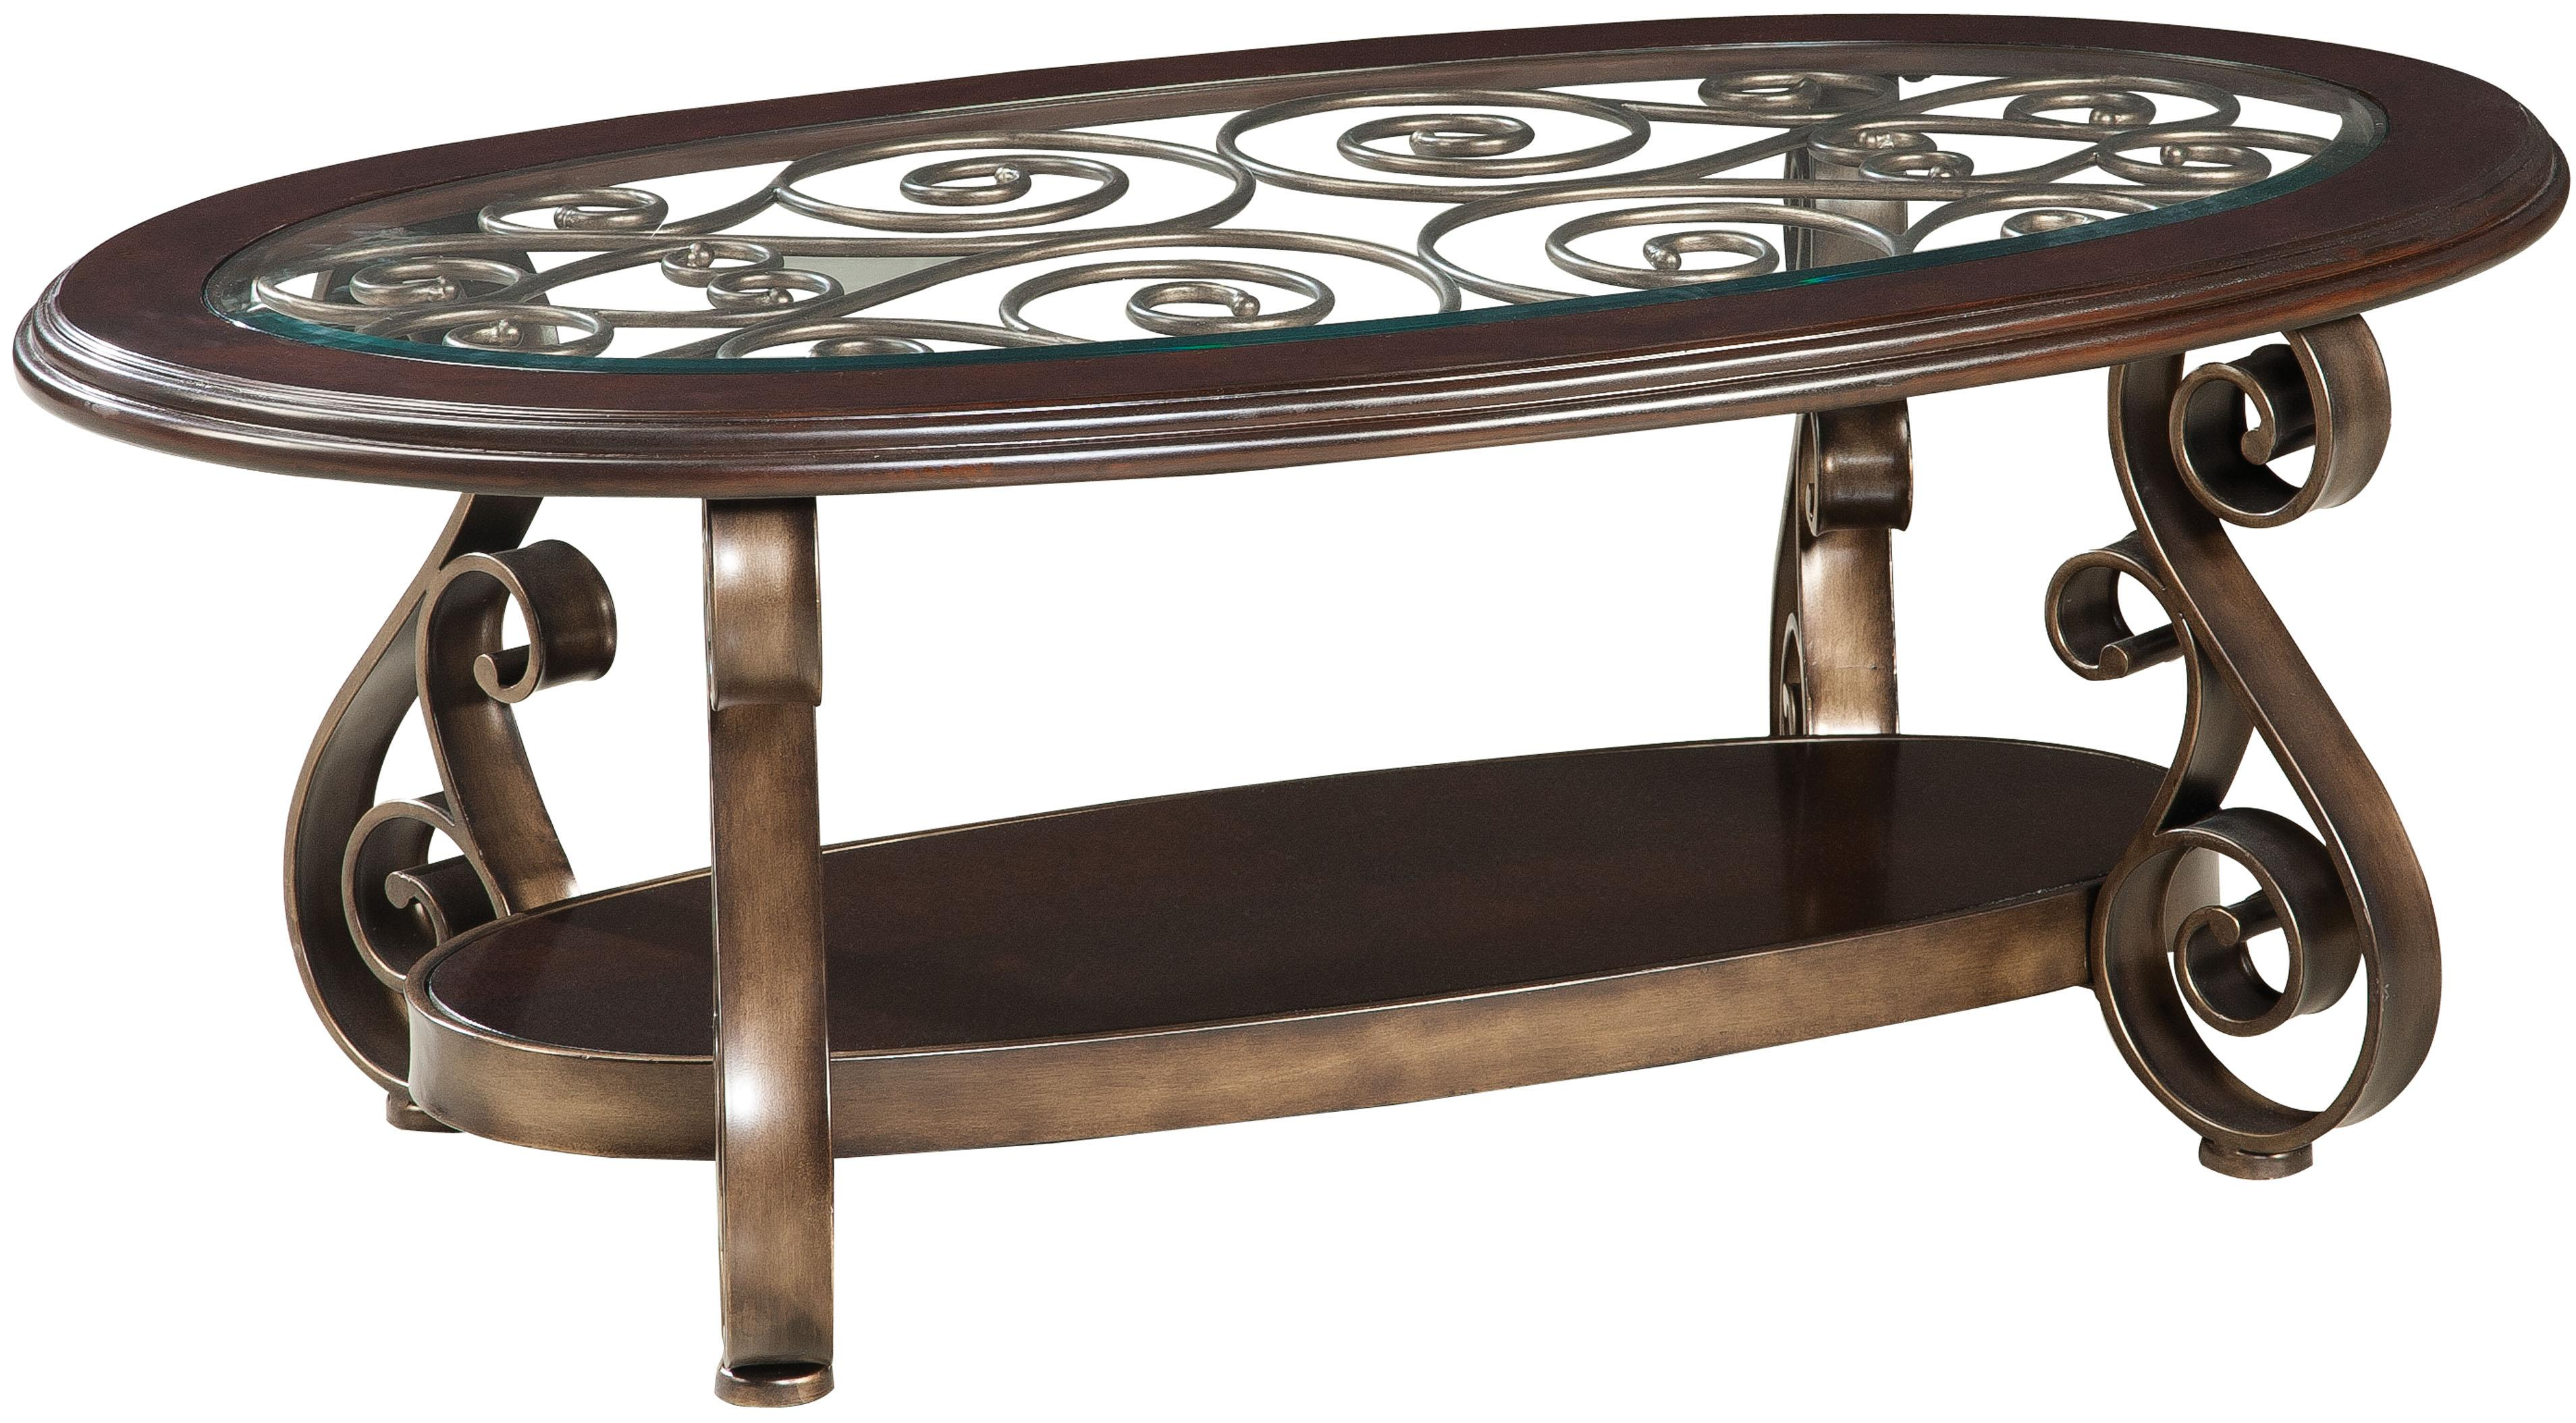 standard furniture bombay old world cocktail table with glass top